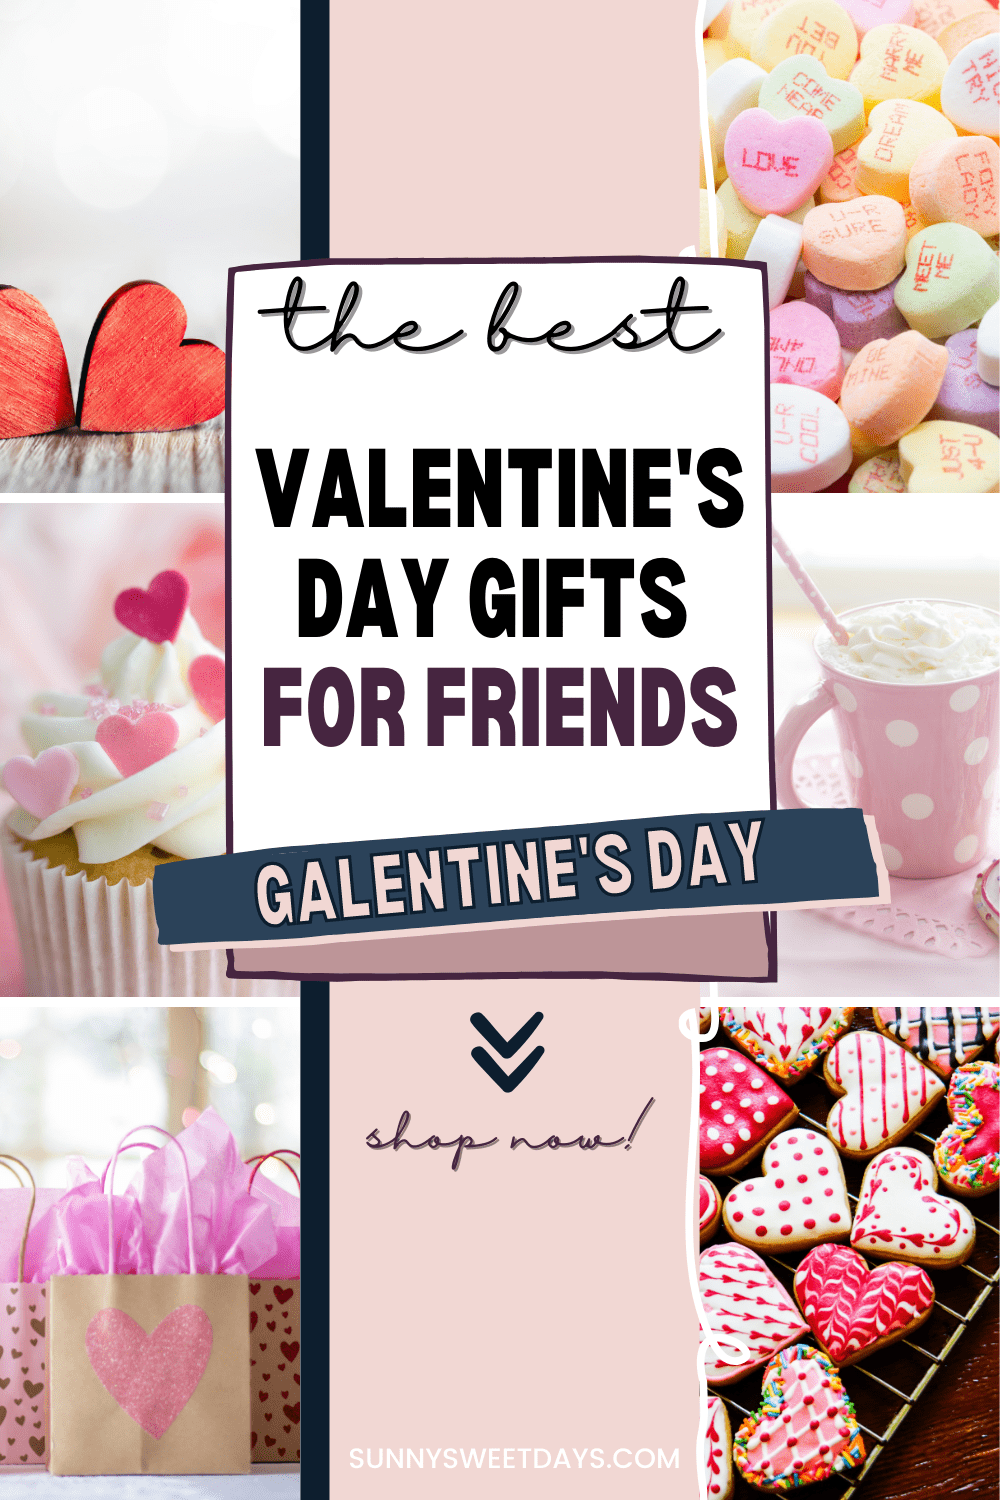 The Cutest Gifts for Galentine's Day